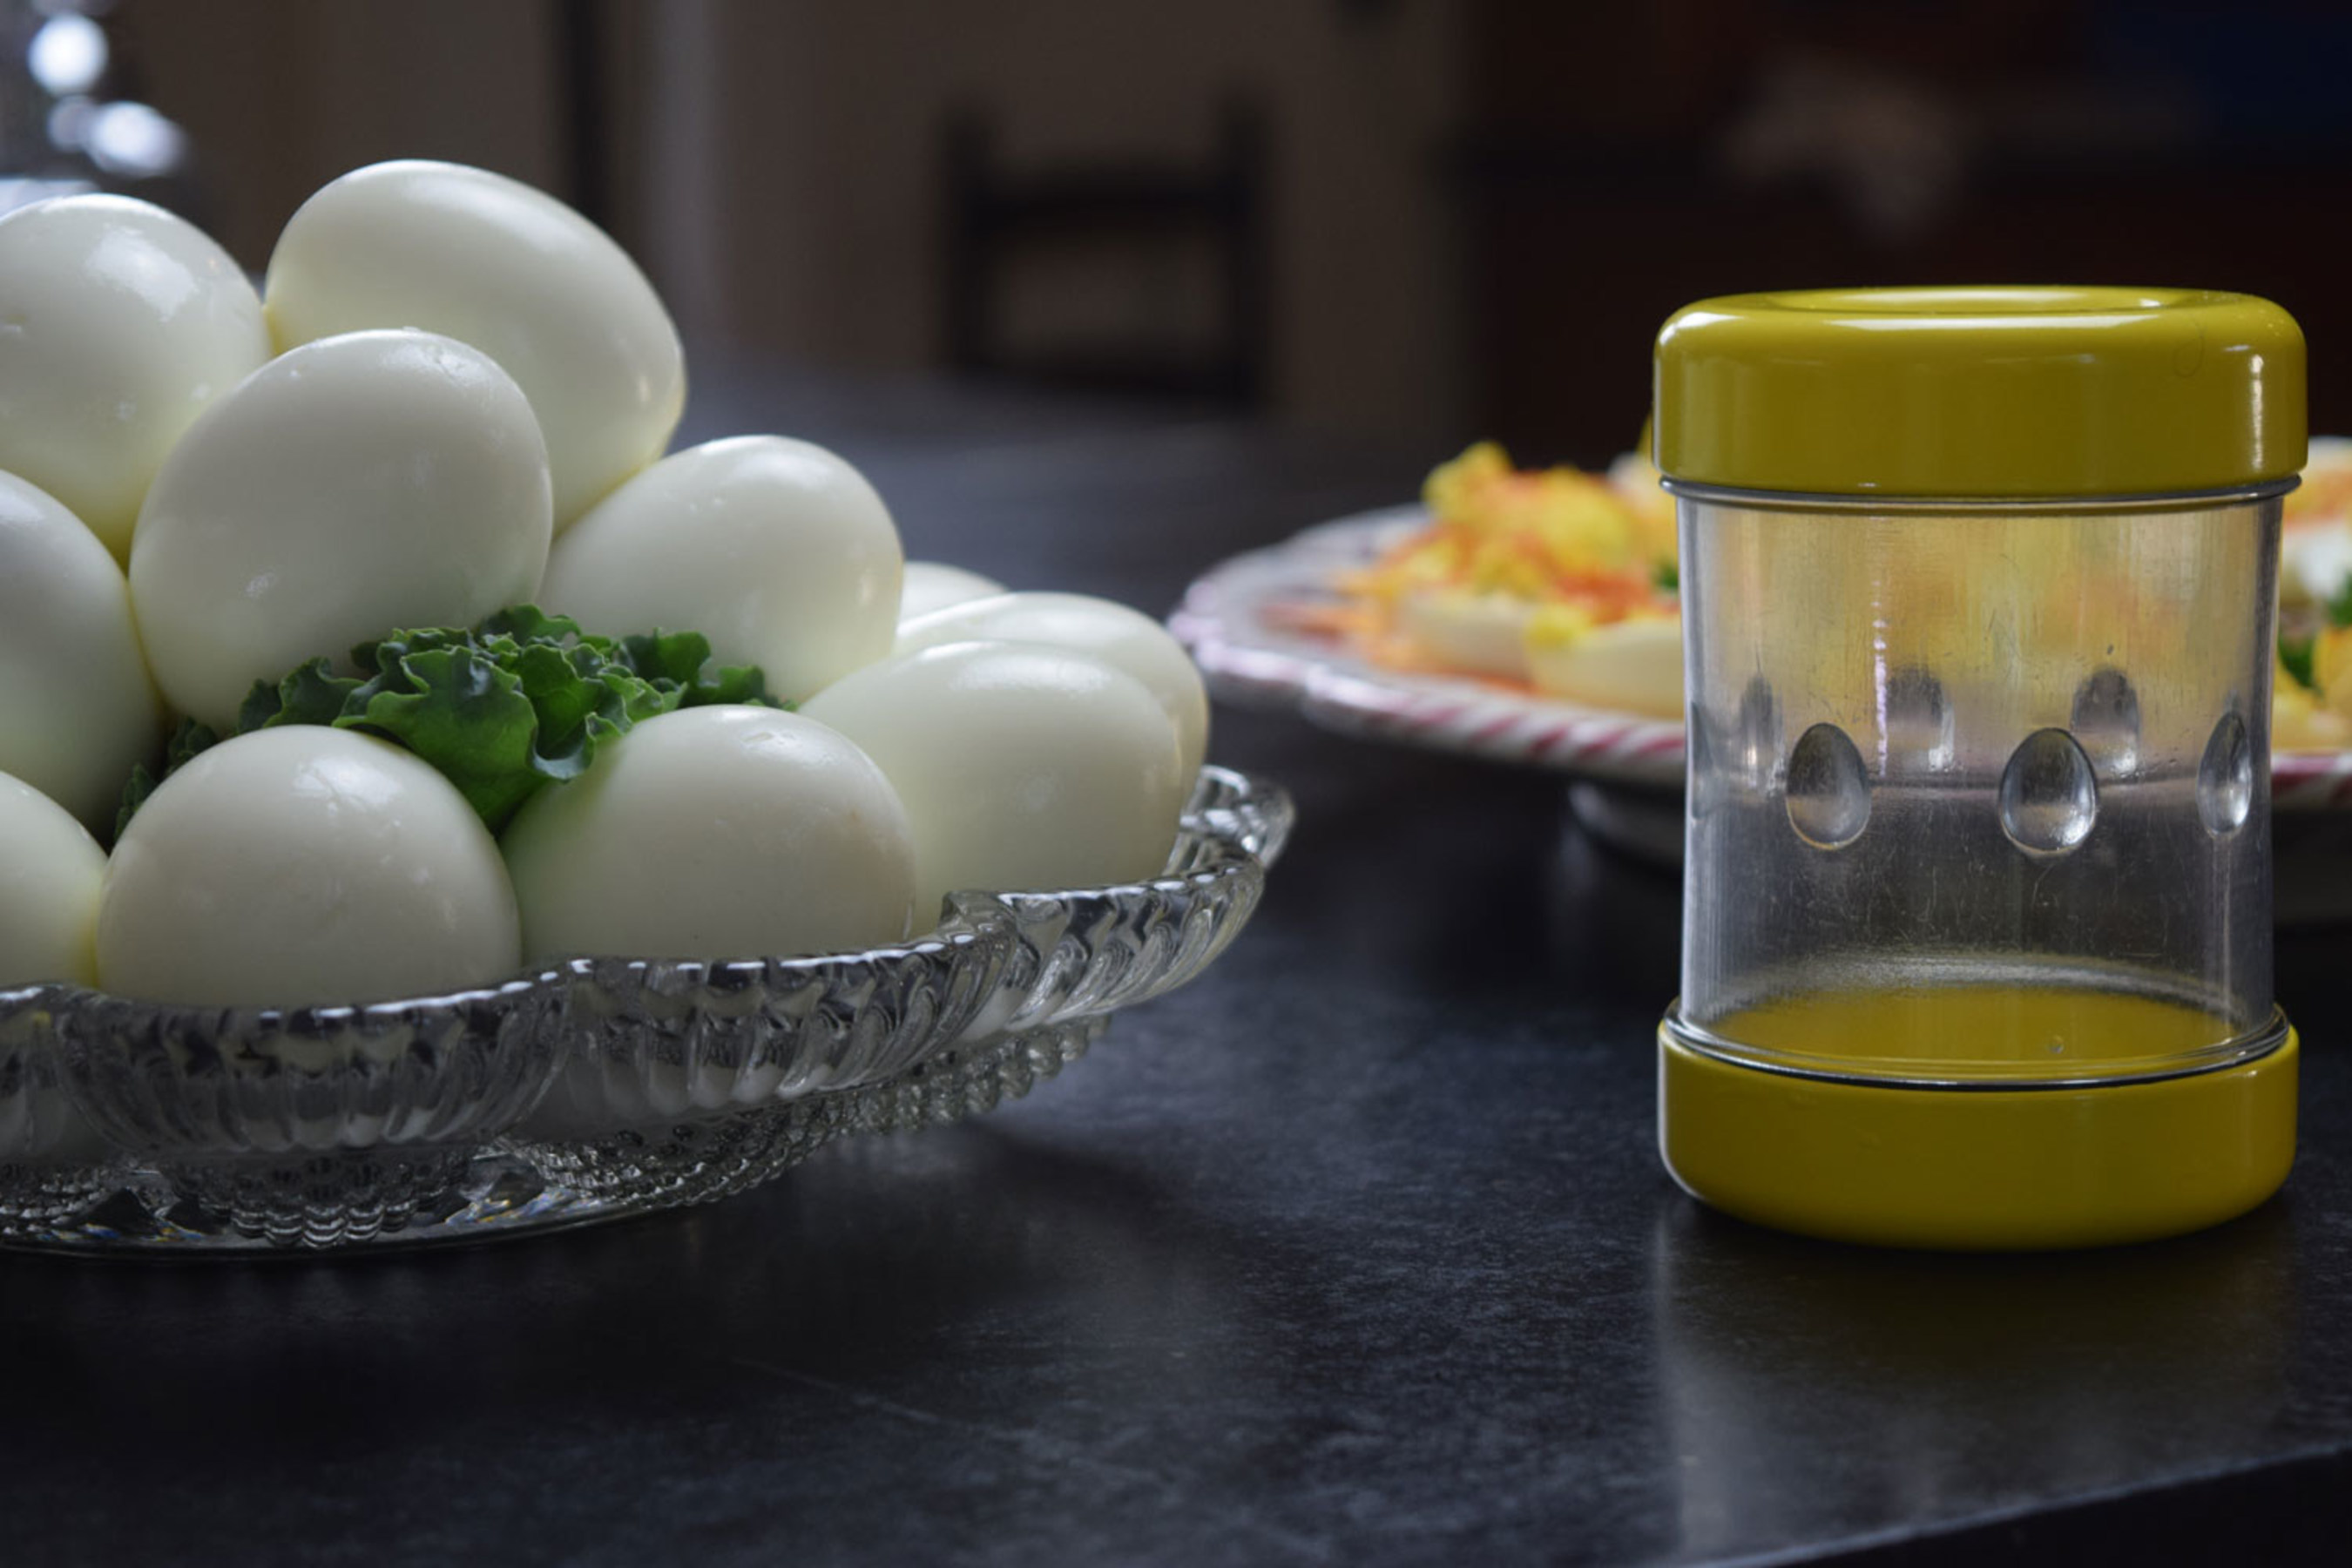 Introducing the New Kitchen Essential, the Negg(TM) Maker